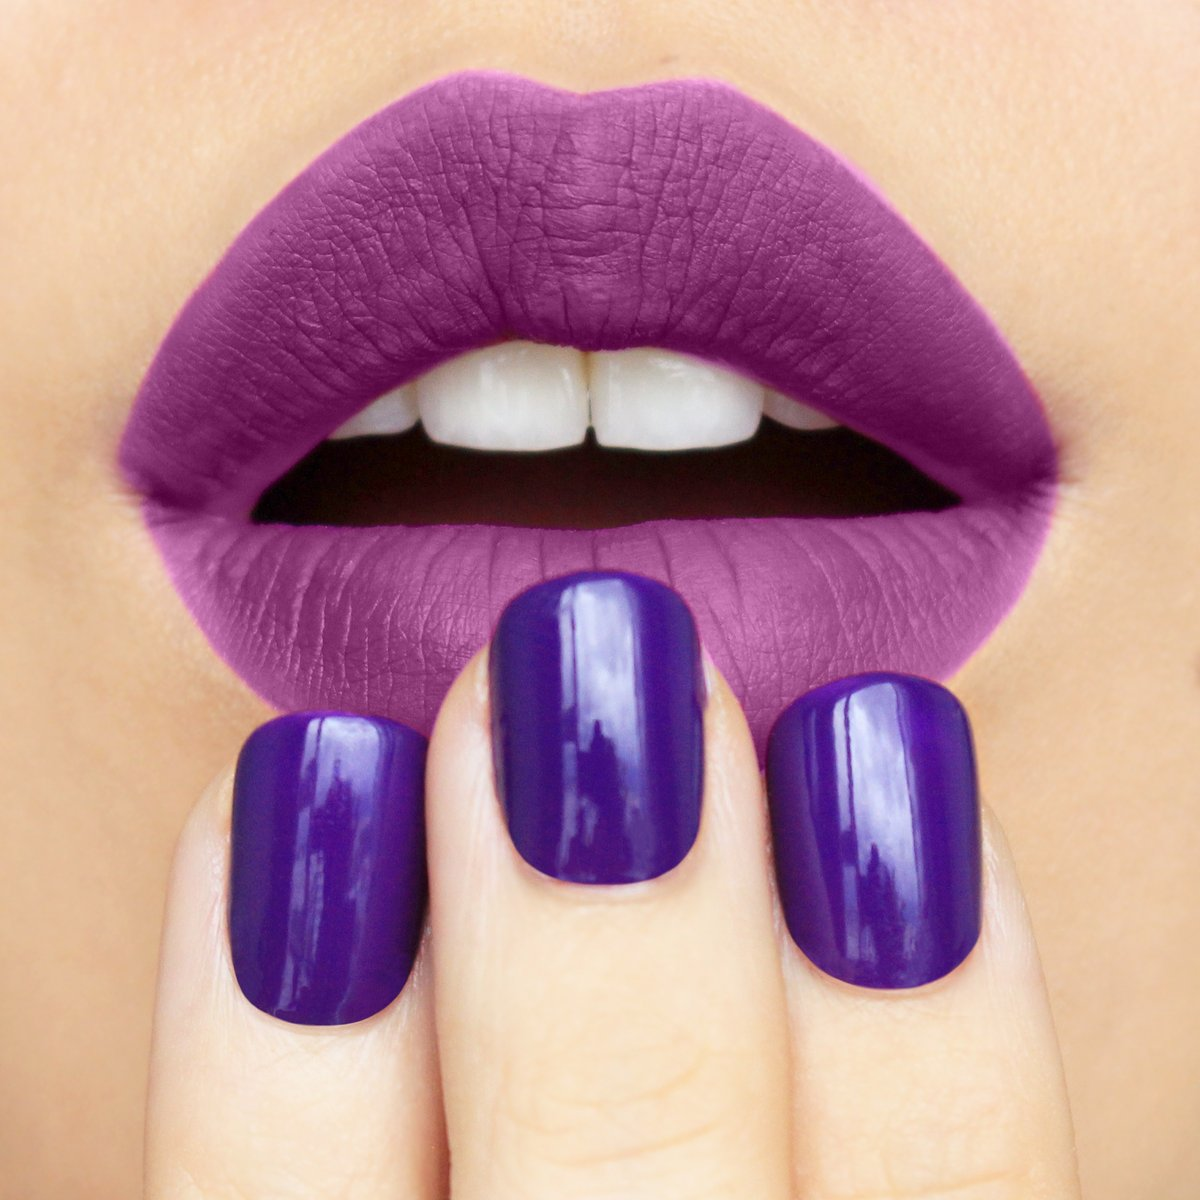 Peep this unmistakable combo of Purple AF Nail Glam & OMG Violet Permanent Pout &  then let us know if you feel tempted to make it POP yet..😉 #POPbeauty #MakeItPOP https://t.co/abbBwbkRxY